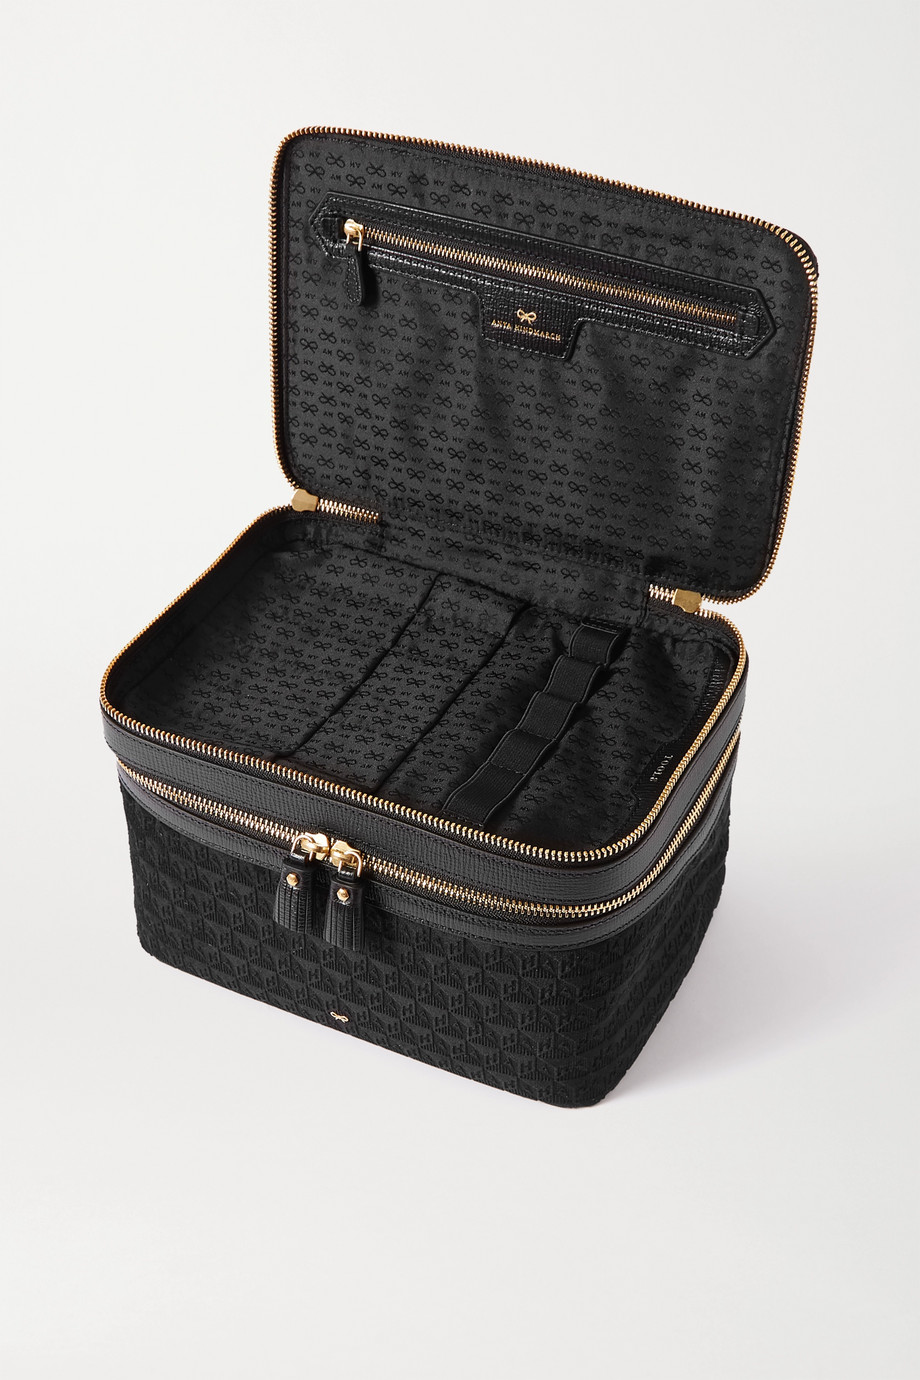 ANYA HINDMARCH Vanity Kit leather-trimmed velvet-jacquard cosmetics case